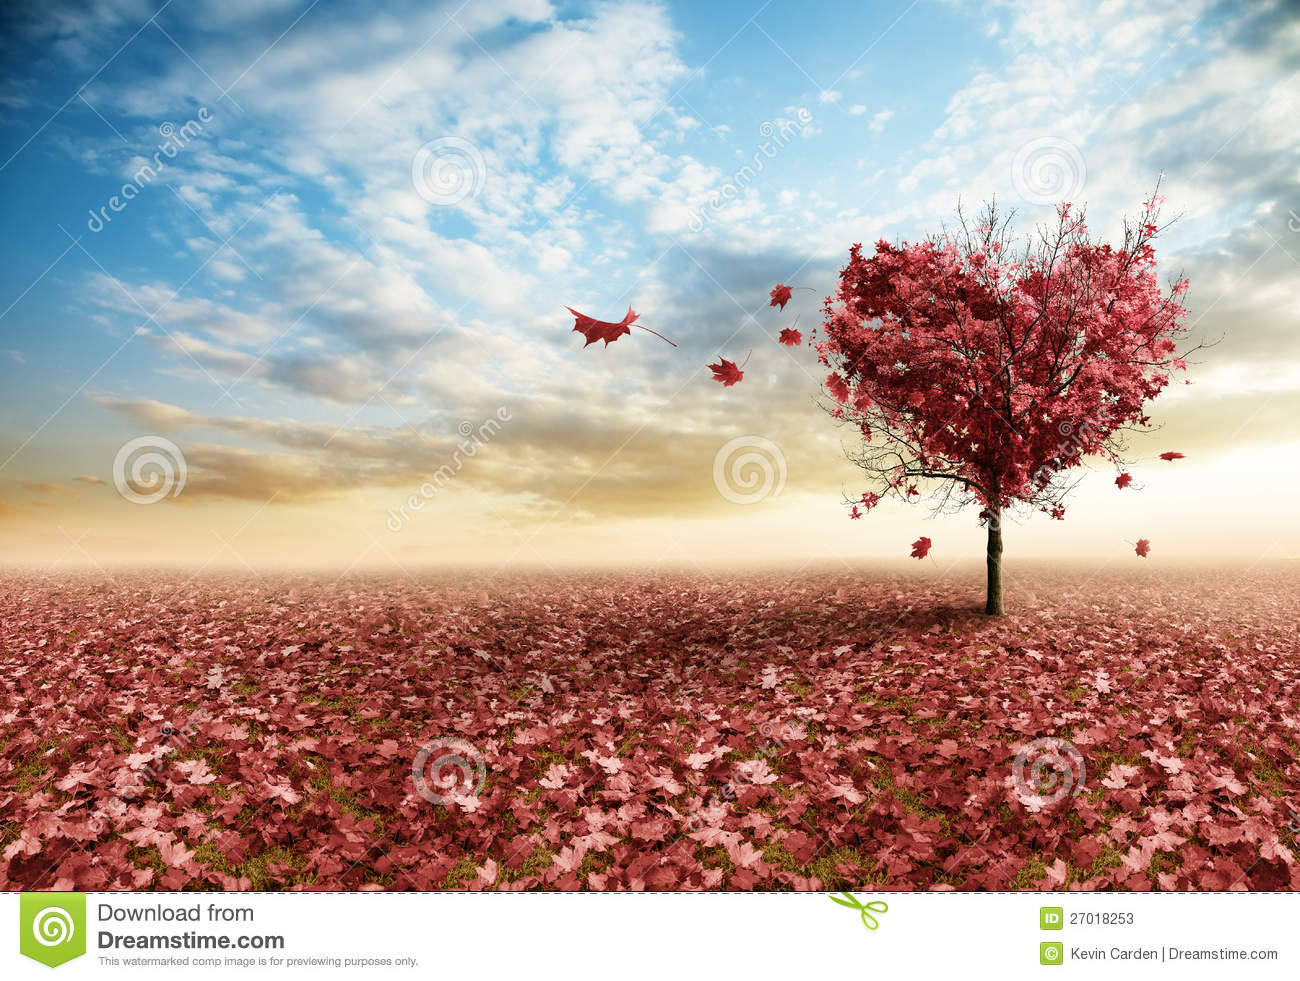 Fall Floiage Wallpaper Red Heart Tree Stock Image Image Of Grow Outdoor Maple